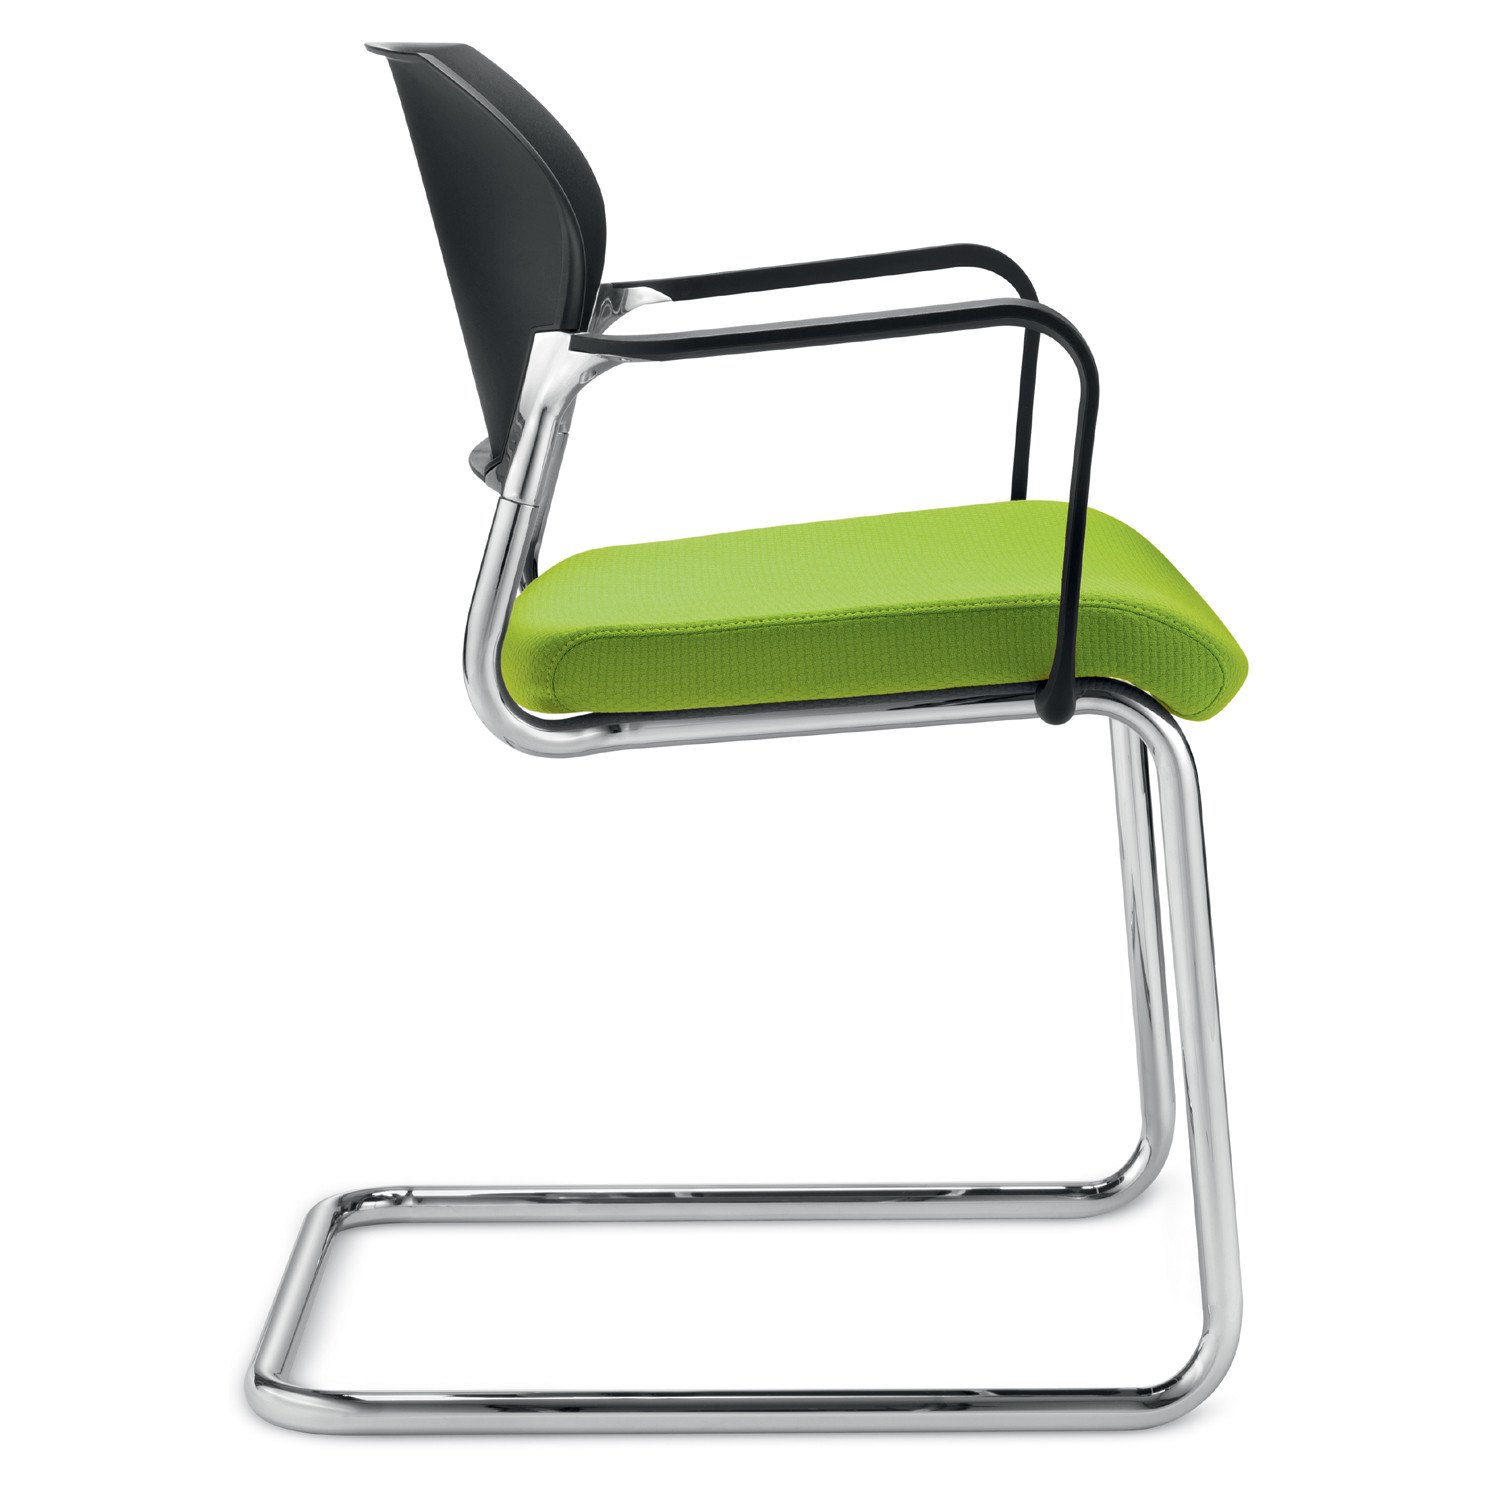 Shape Elan Cantilever Chair